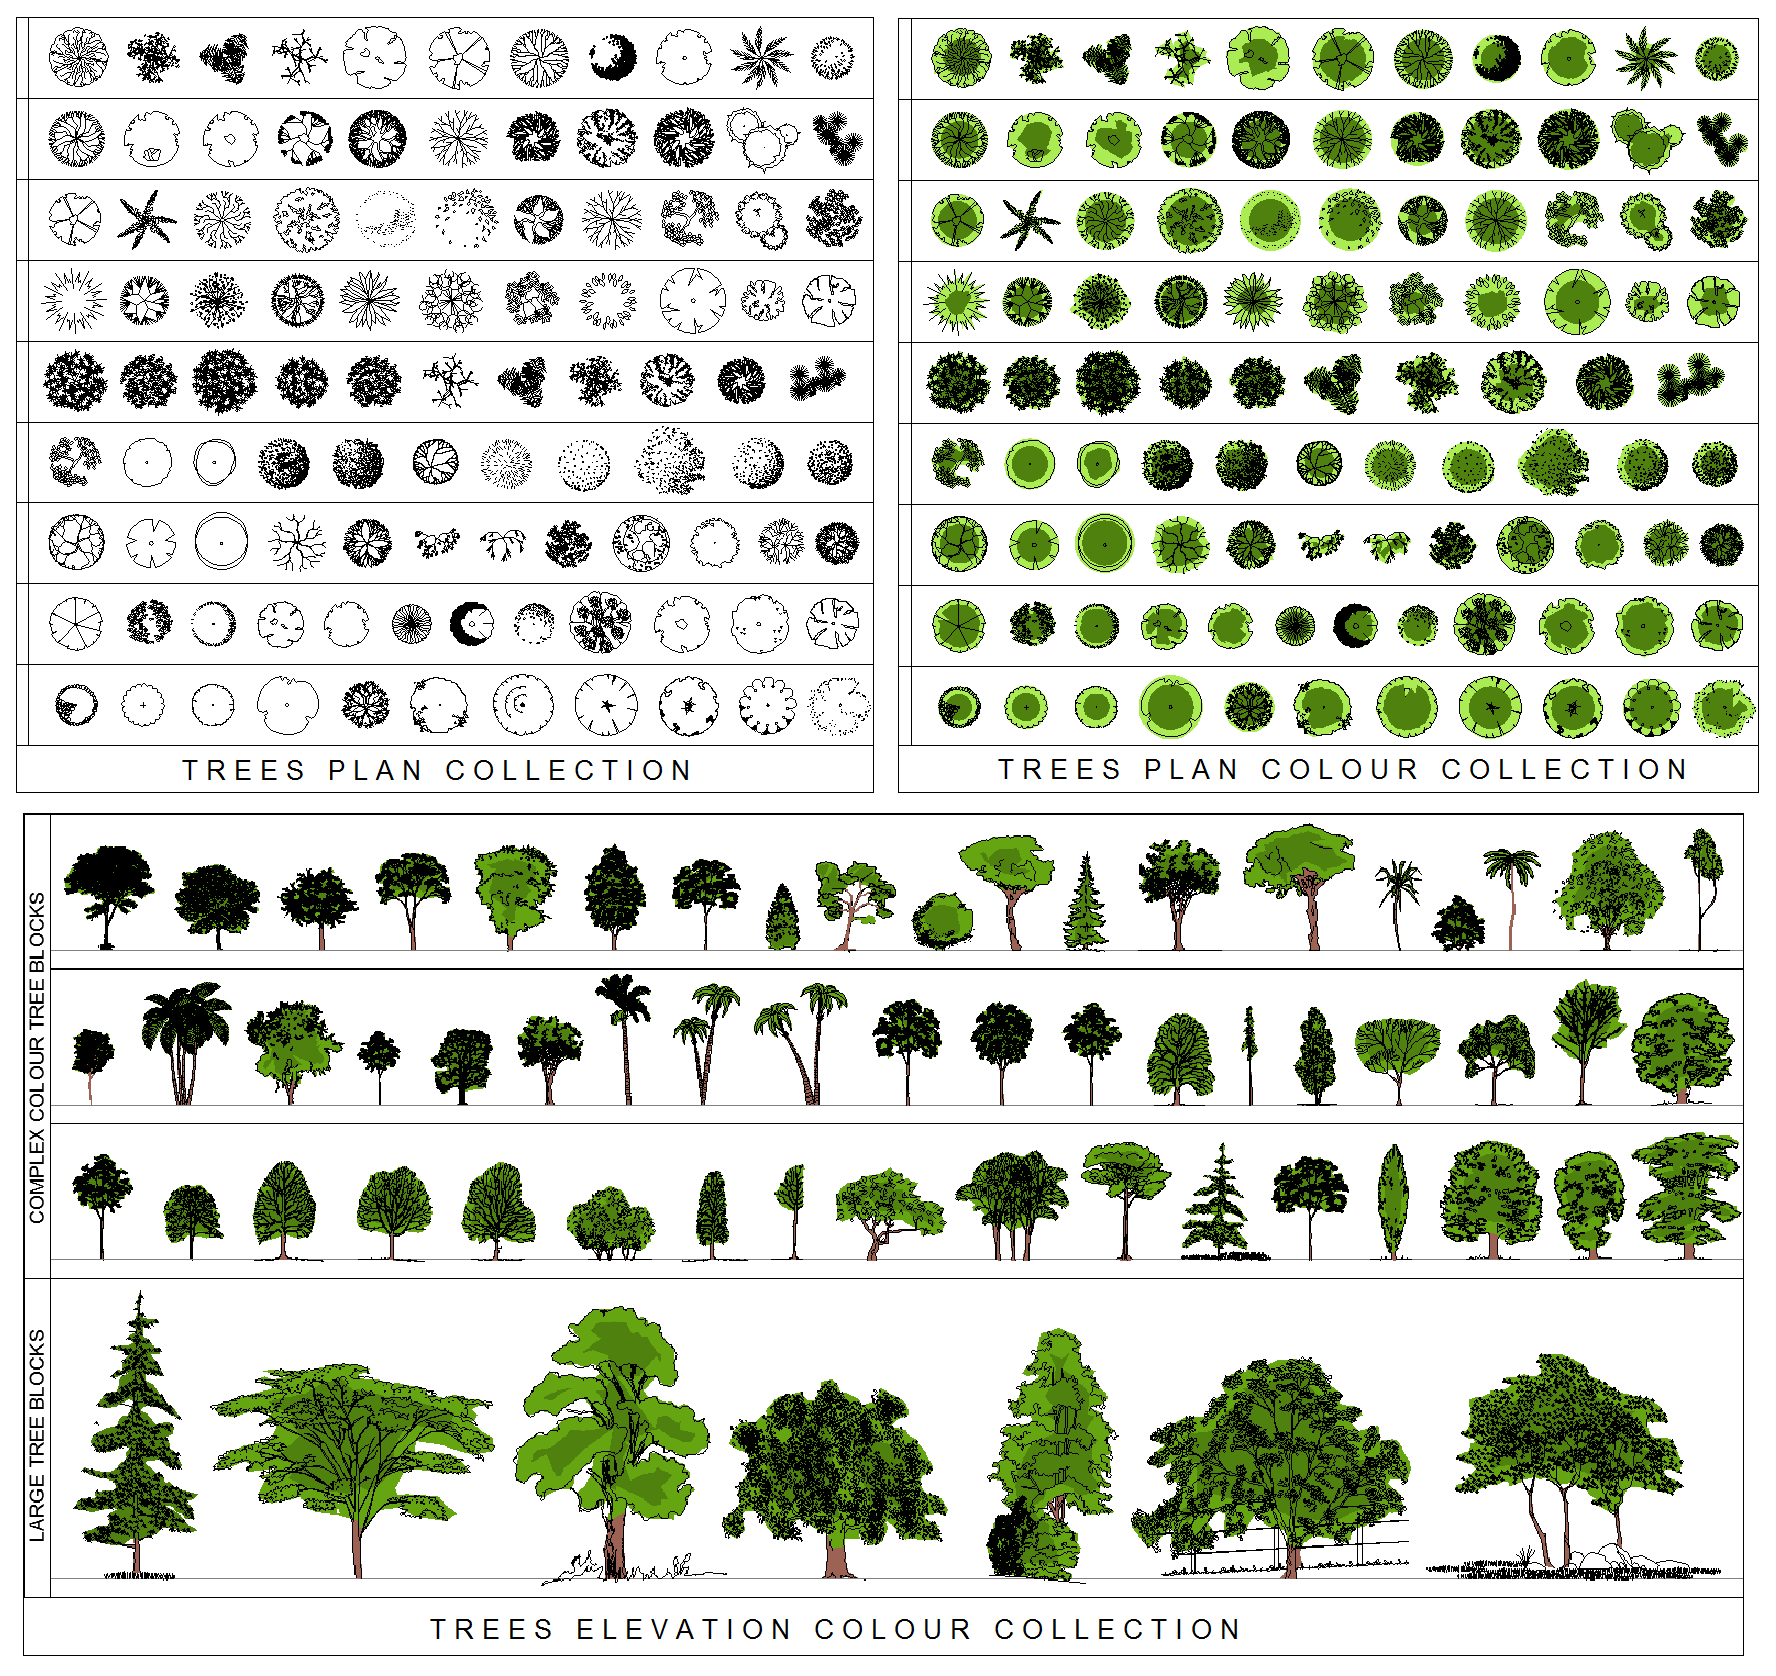 Top view plants 02 2d plant entourage for architecture - Architectural Trees Png Tr02 Tree Collection Bundle Png